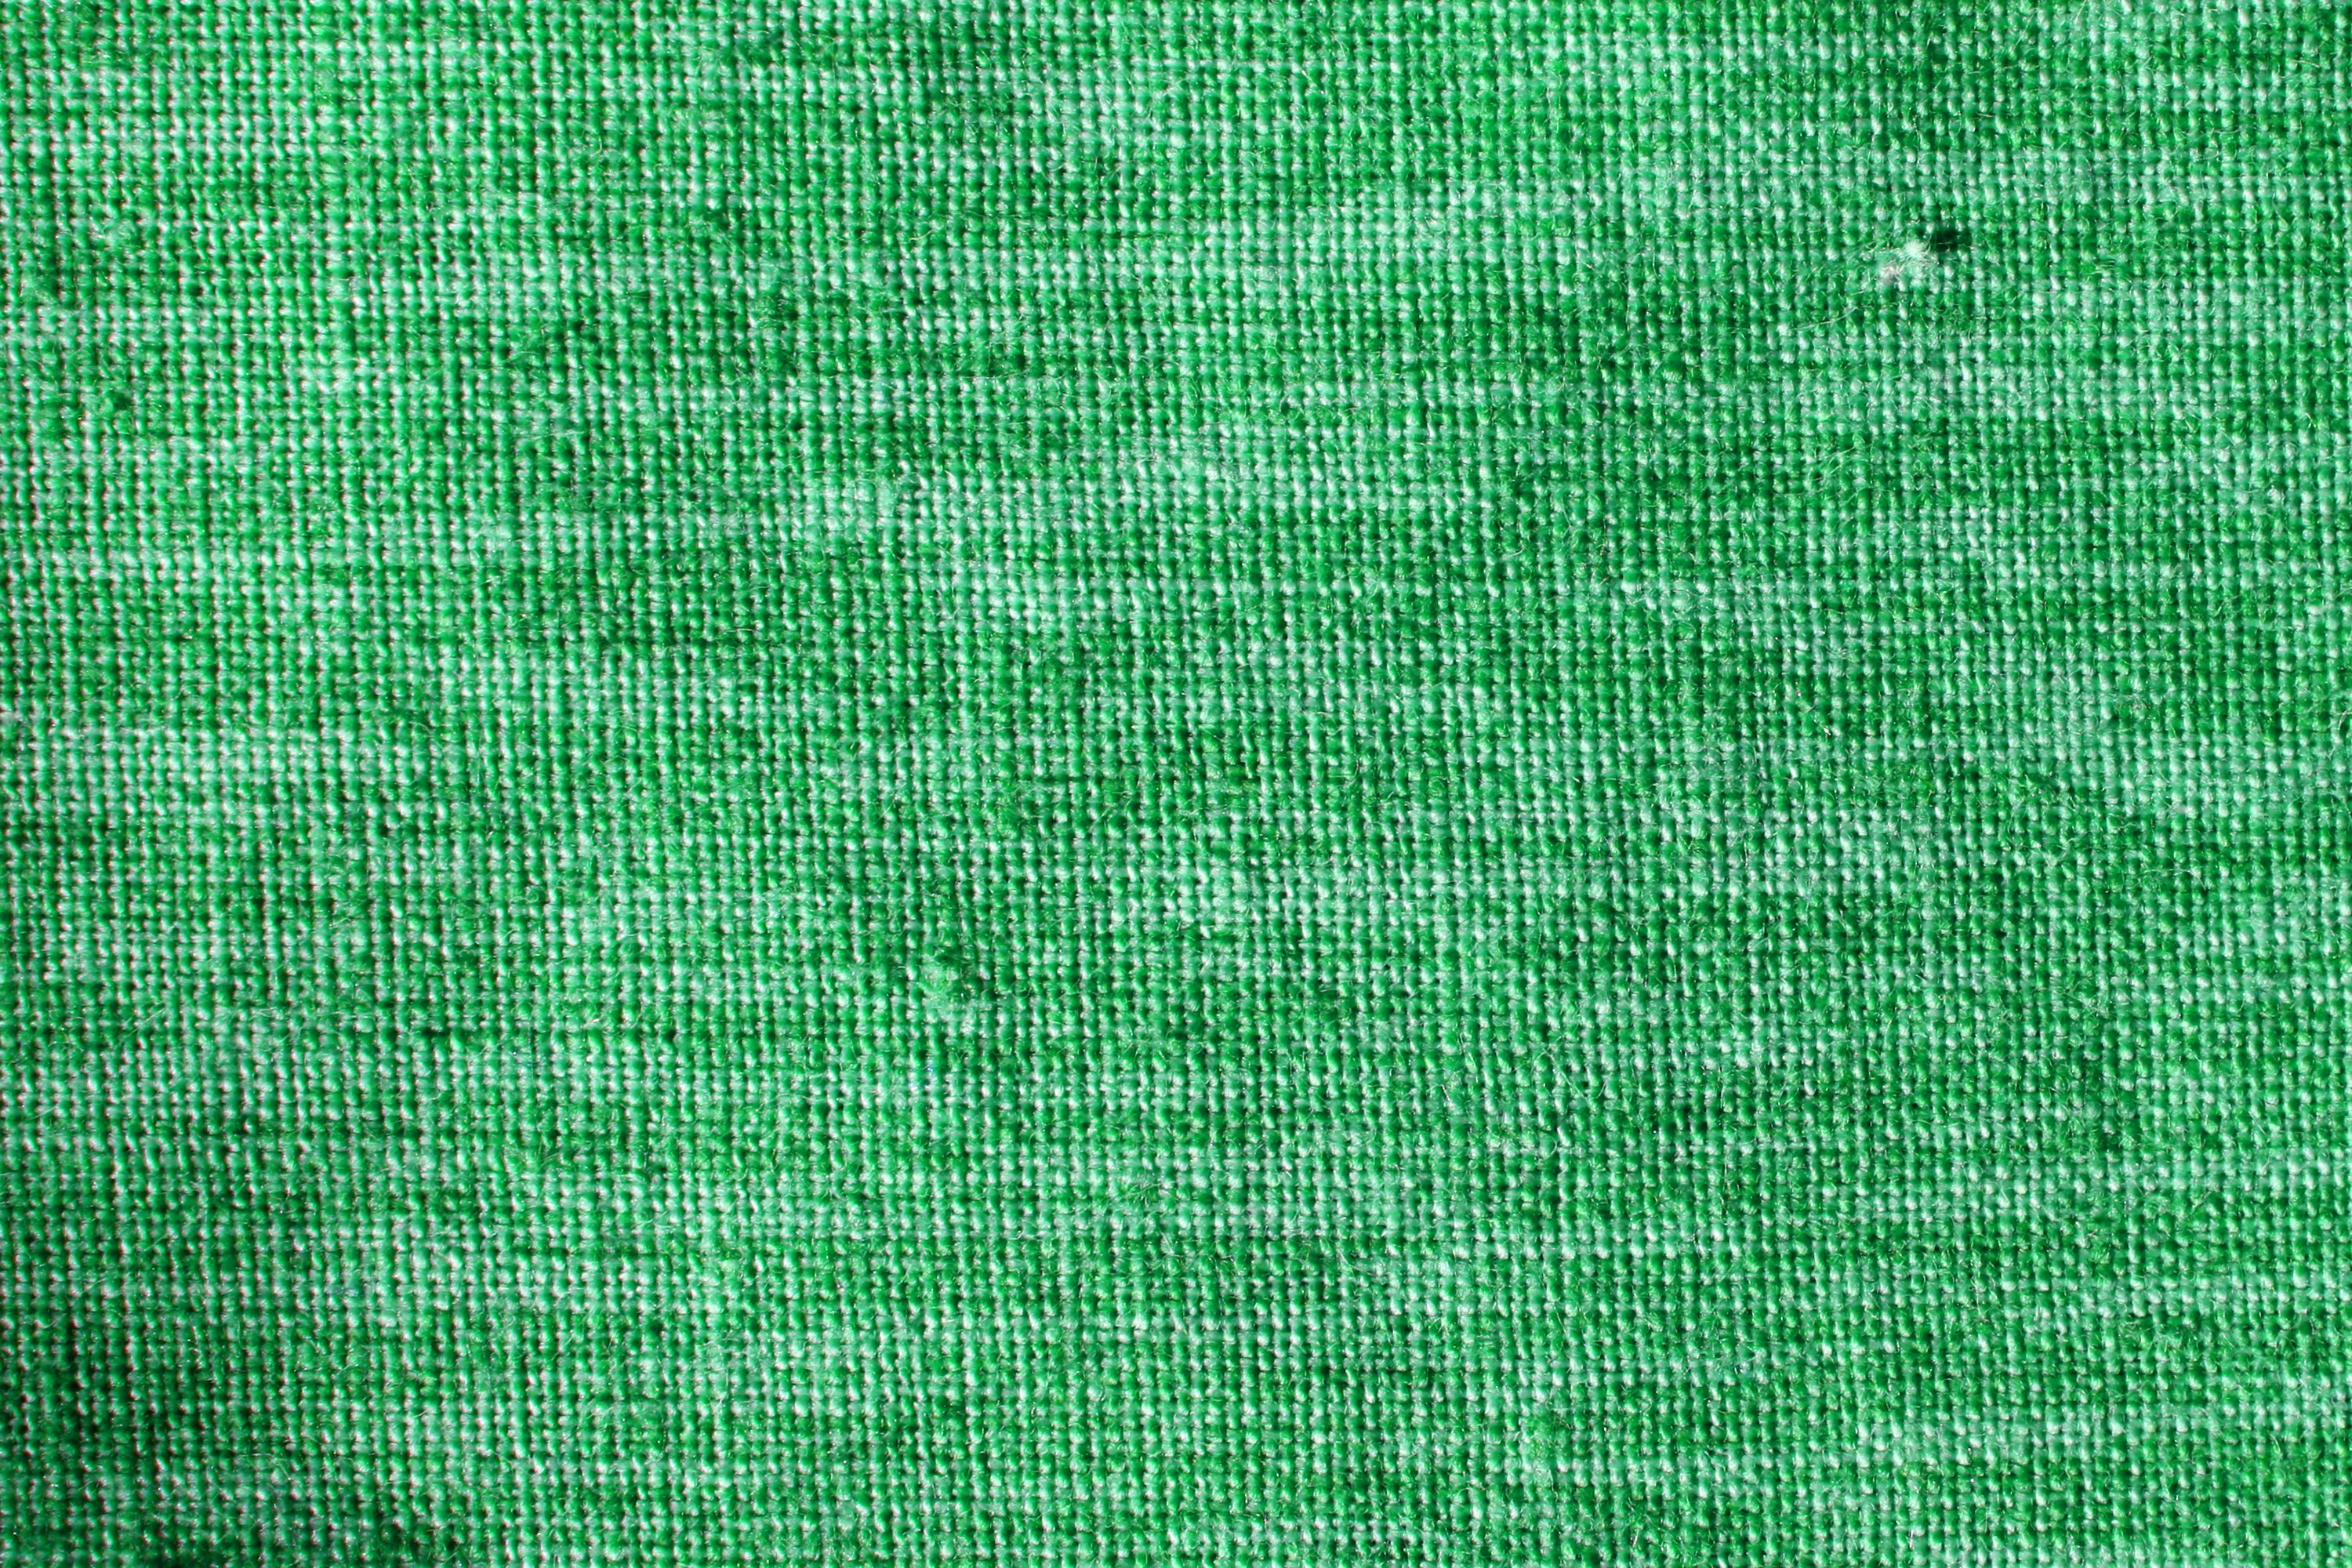 Green Woven Fabric Close Up Texture Picture Free